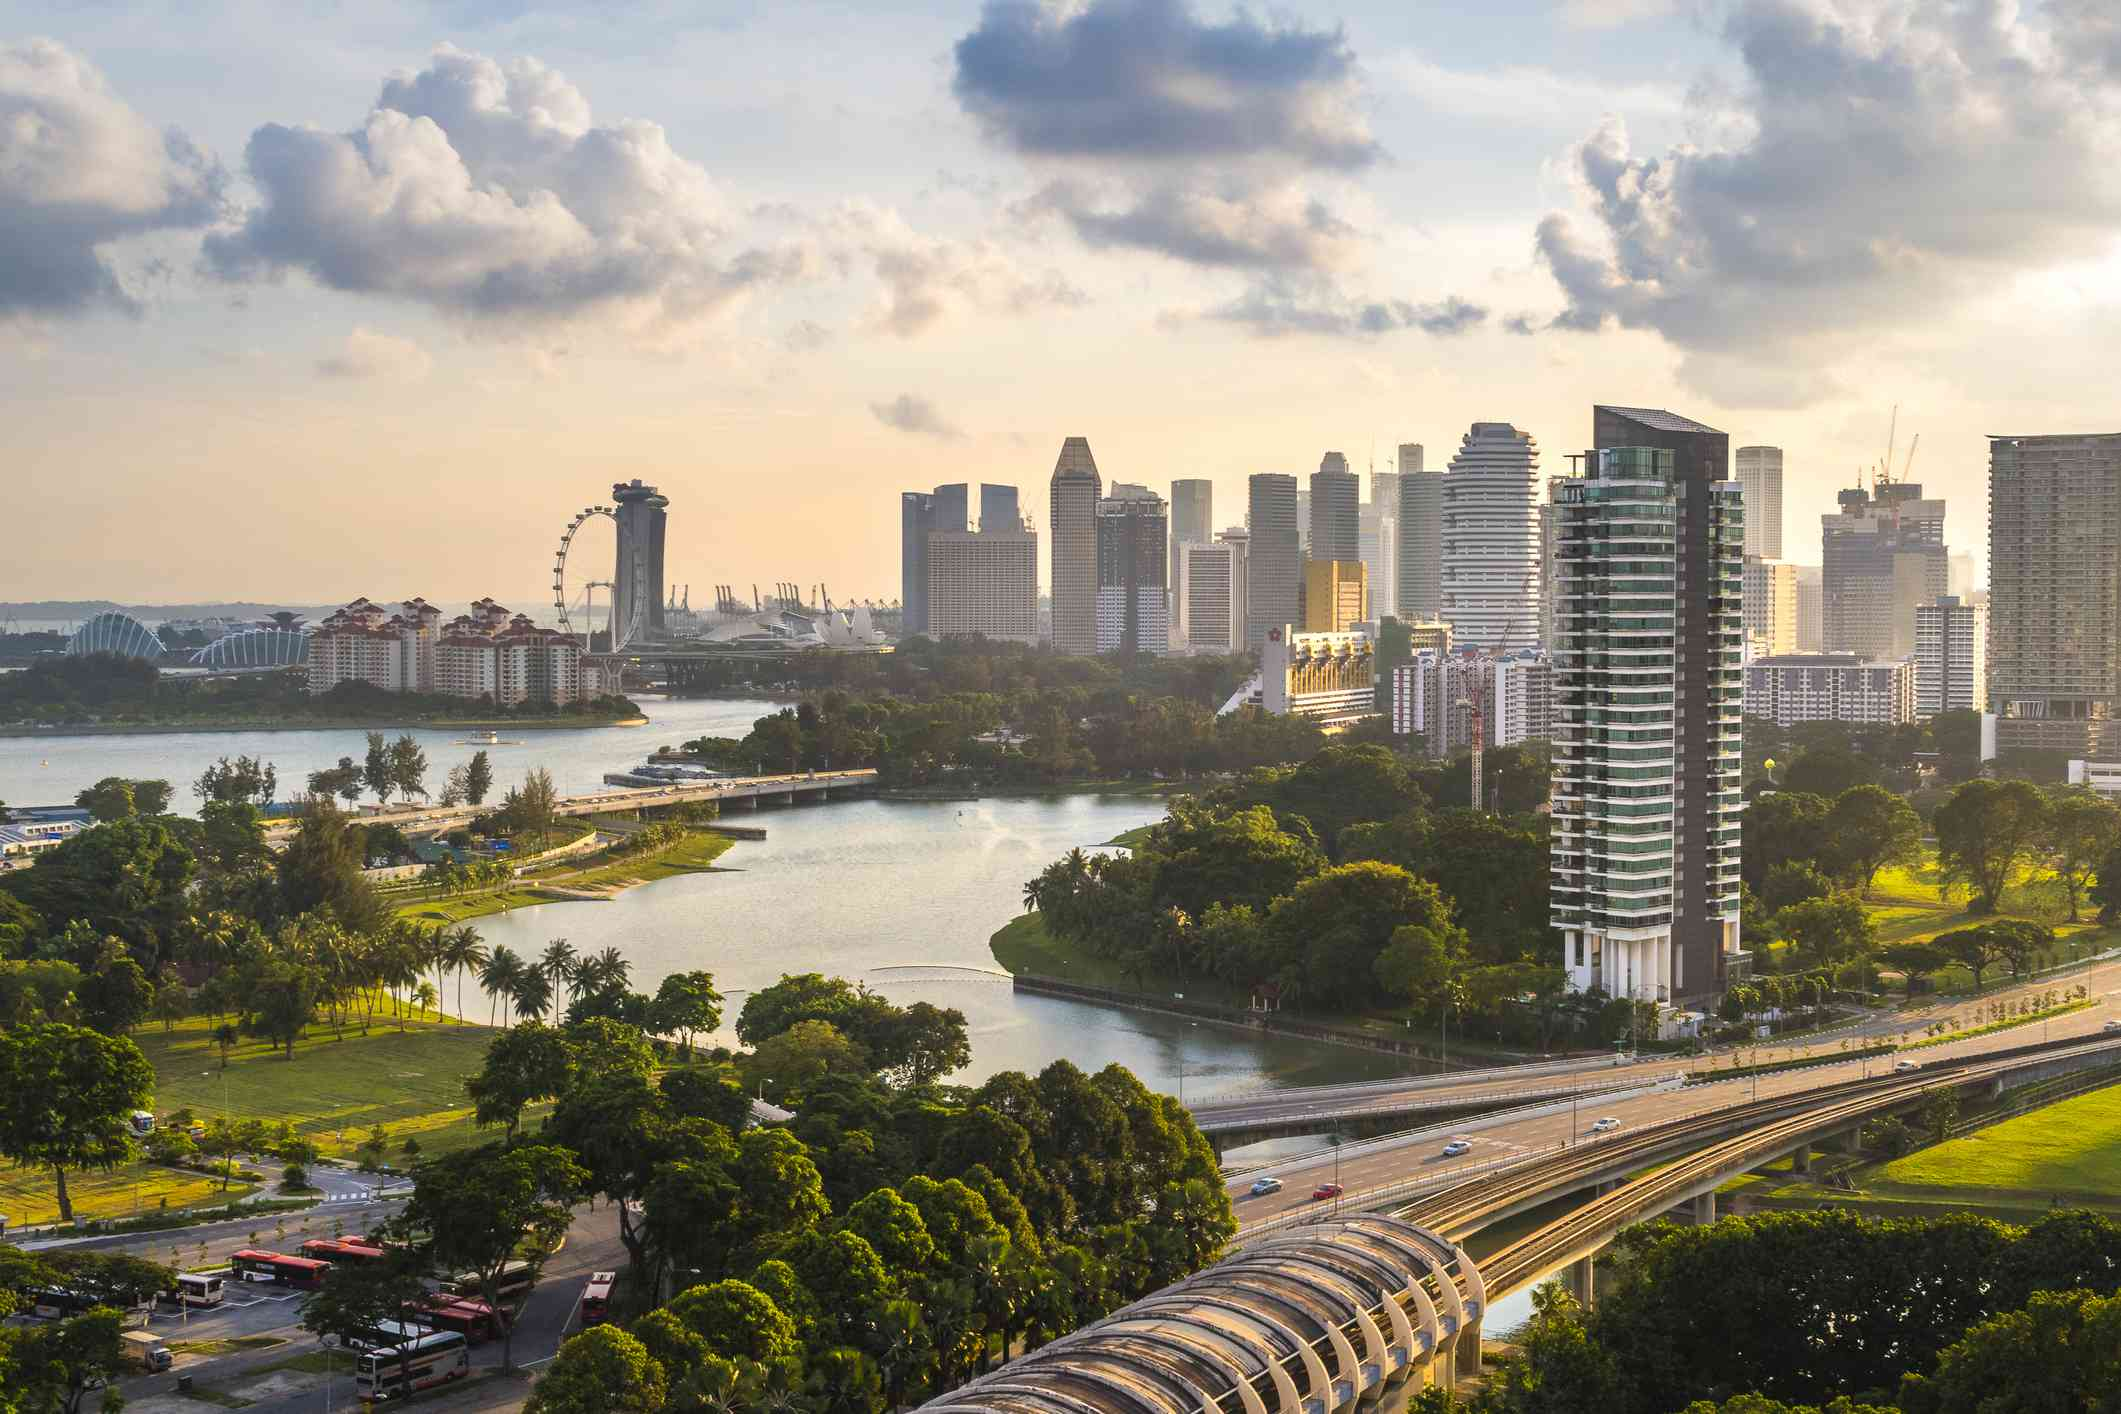 Downtown Singapore high rise buildings next to lush green trees and waterways under a sunny sky with white clouds